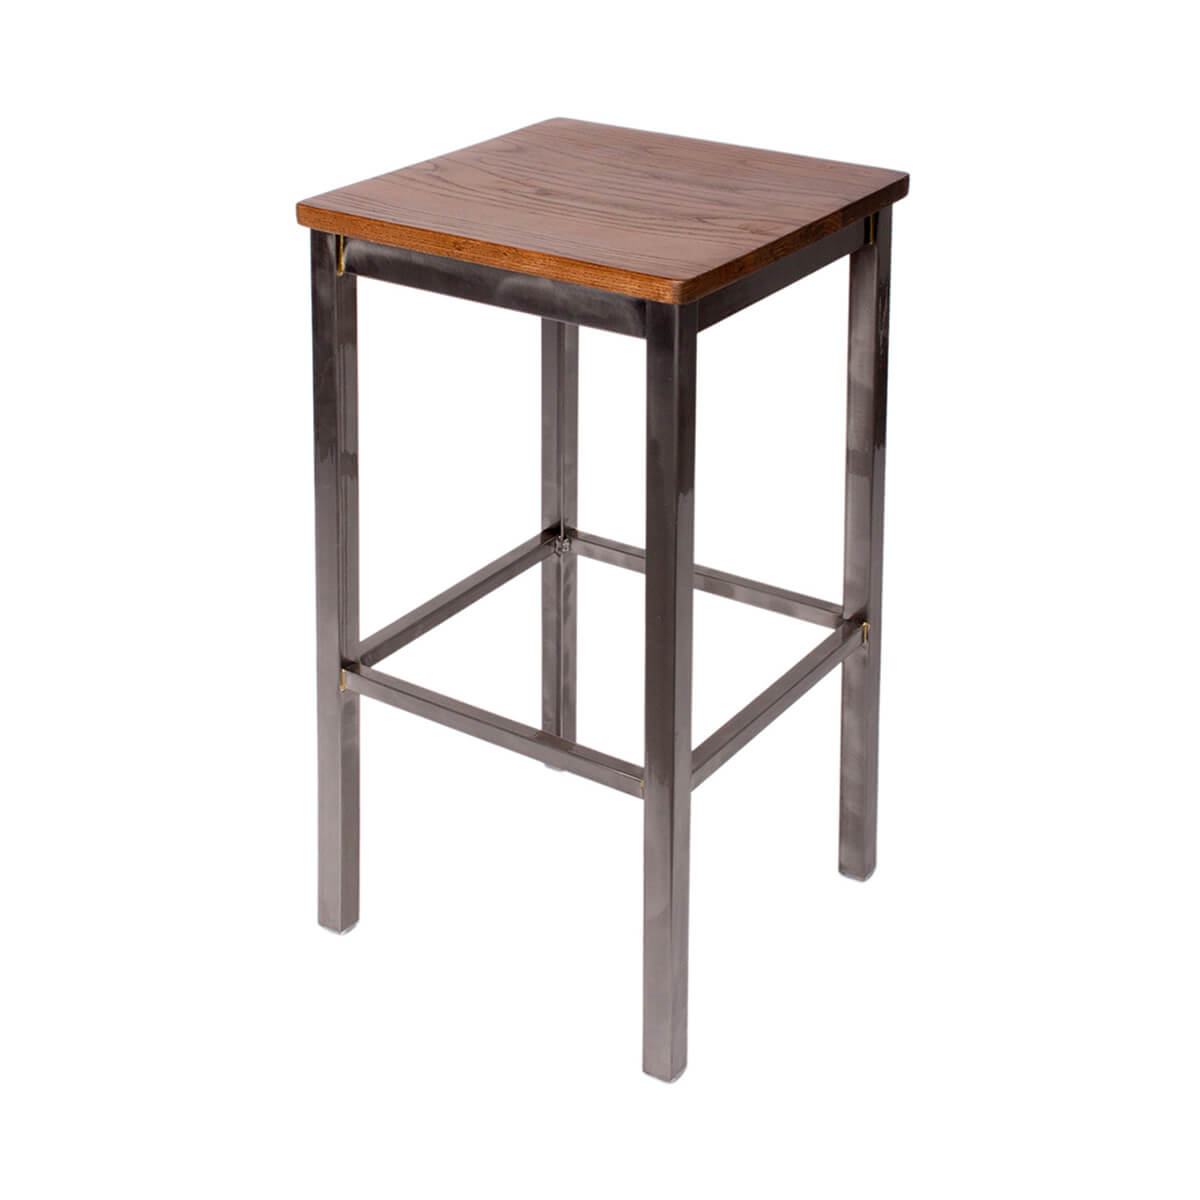 _0000s_0099_Trent Clear Backless Barstool